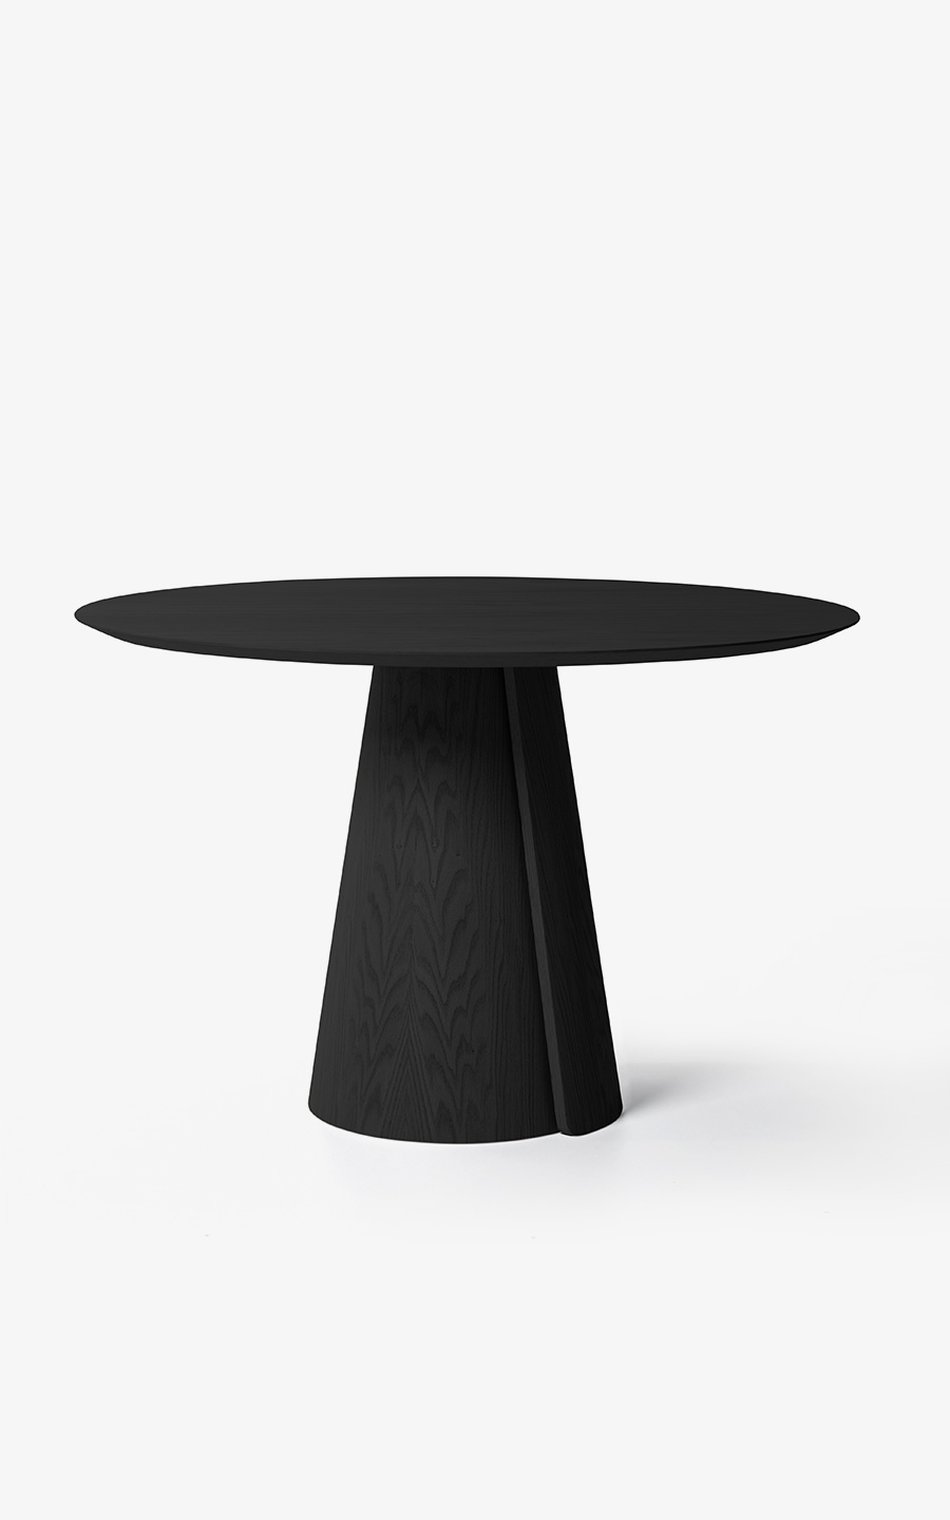 MESA JANTAR VOLTA | VOLTA DINING TABLE